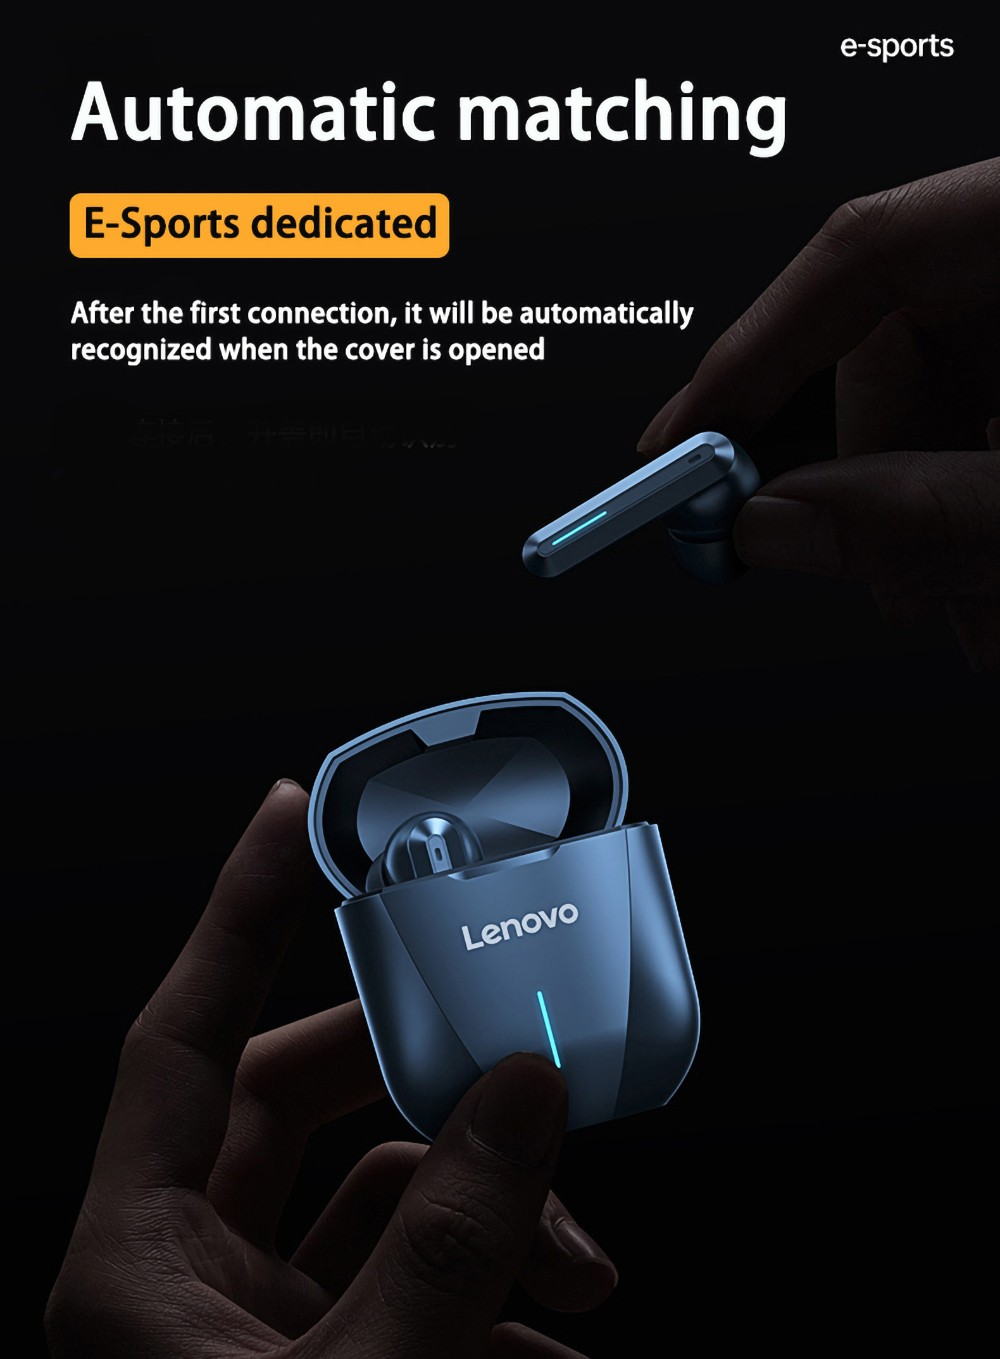 Lenovo XG01 Wireless Bluetooth Earbuds Headphone No Delay Gaming Game Earphone Headset High Quality Long Battery Life - White